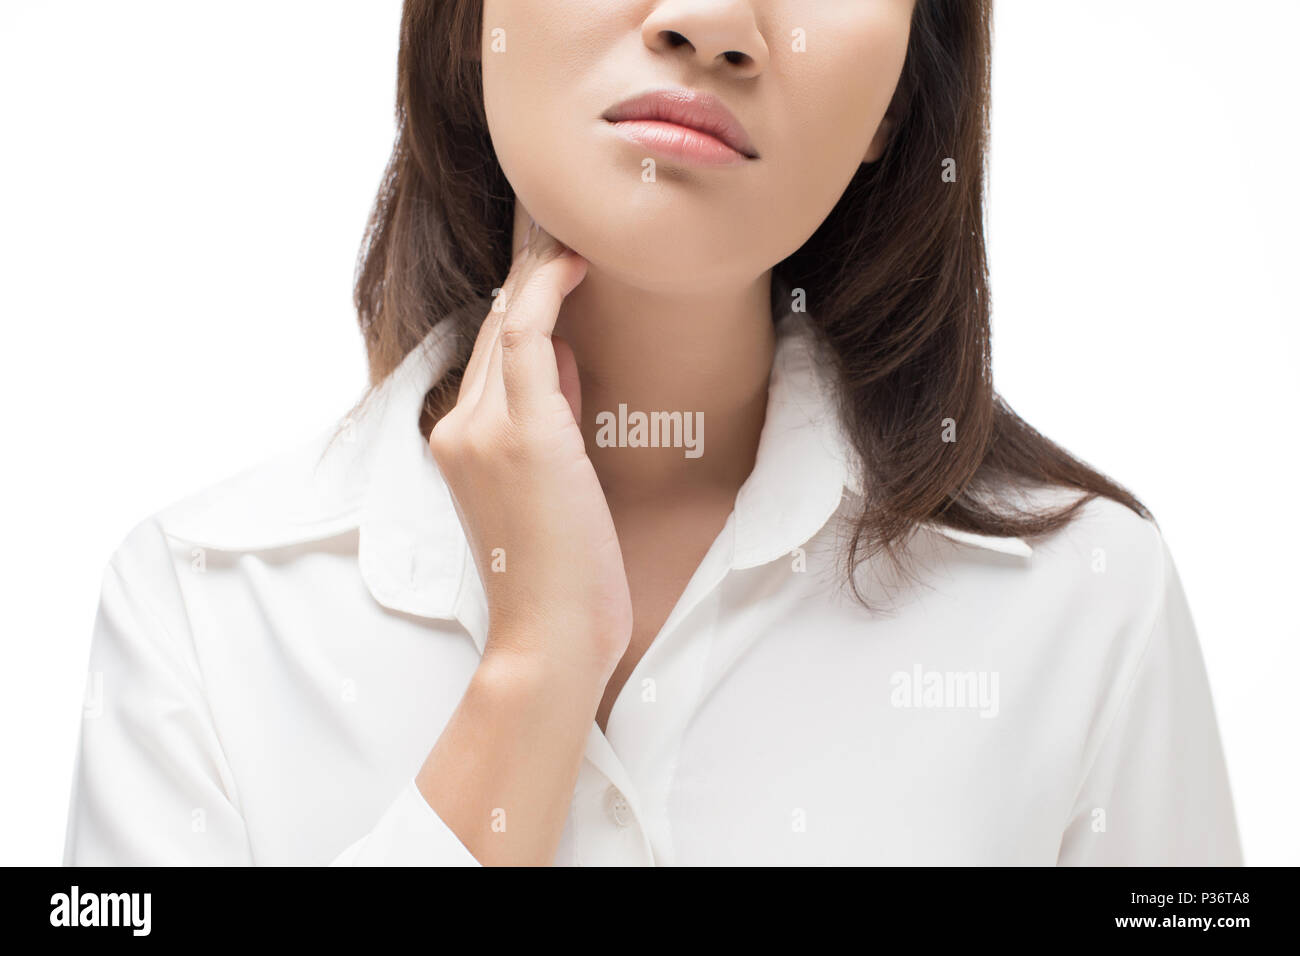 Sore throat woman on white background - Stock Image